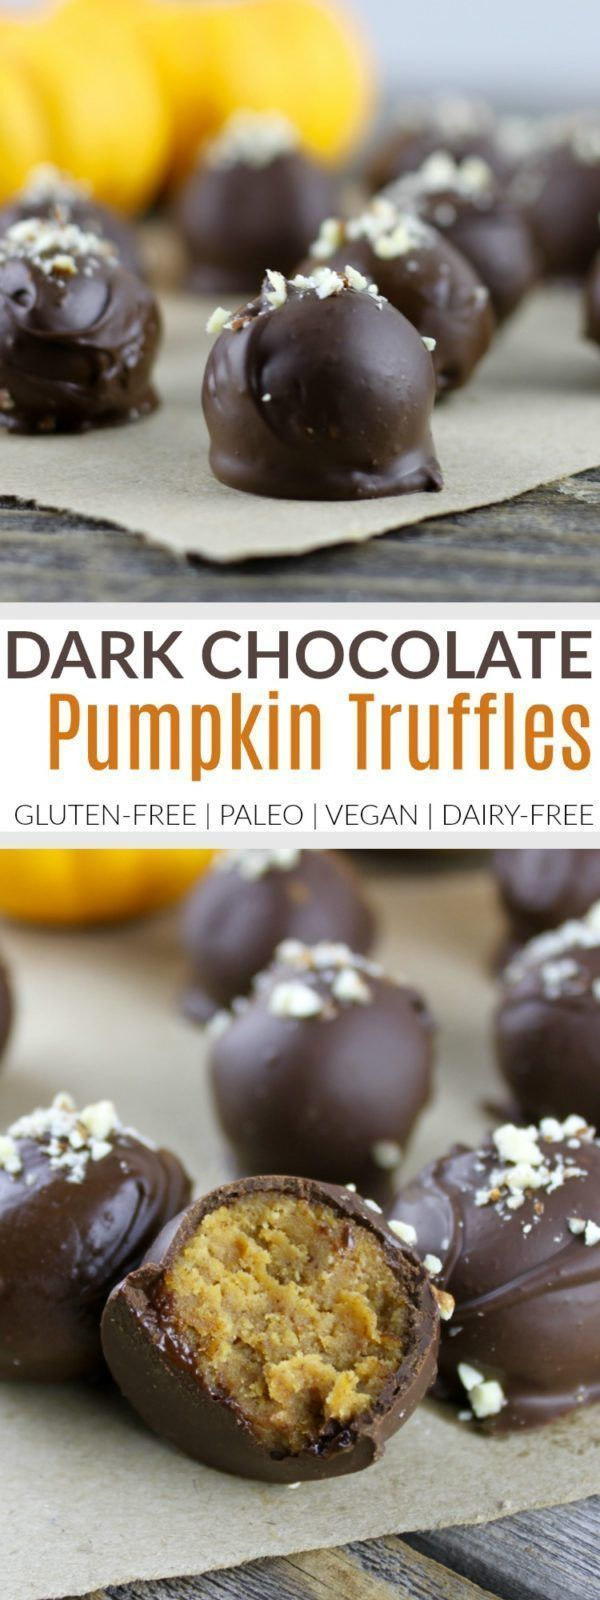 Pumpkin Pie Truffles | healthy fall dessert recipes | healthy truffle recipes | healthy pumpkin dessert recipes | healthy chocolate recipes | gluten free fall desserts | gluten free truffle recipes | how to make healthy truffles | paleo dessert recipes | paleo fall recipes | paleo dessert recipes | paleo pumpkin recipes | vegan fall dessert recipes | vegan pumpkin recipes | dairy-free fall desserts | dairy-free pumpkin recipes || The Real Food Dietitians